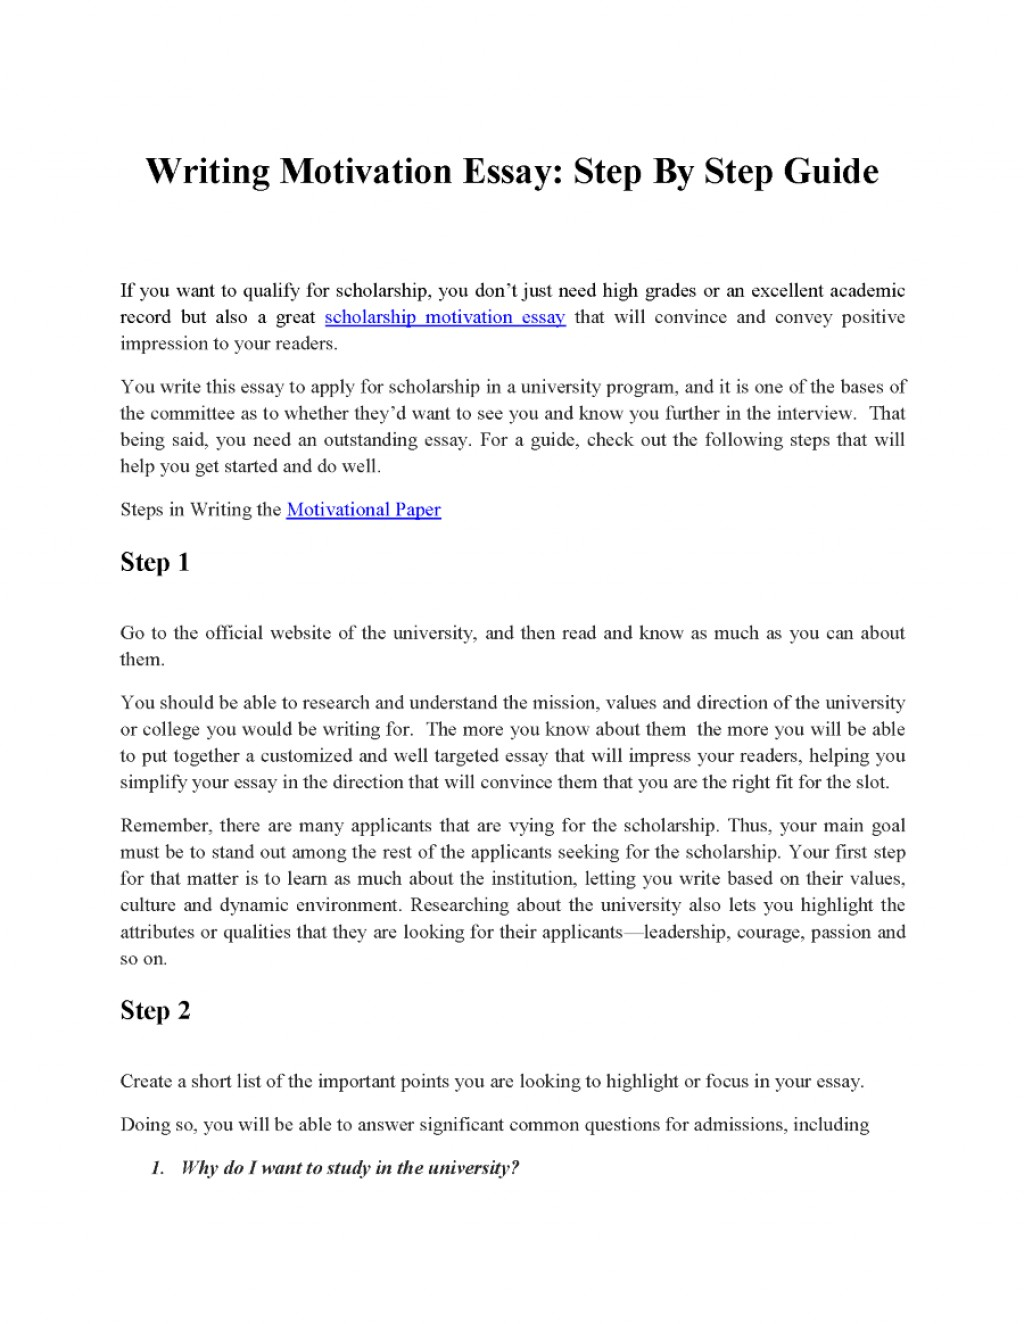 024 2948595 636128784141107500 Slide1 Fs Steps Writing Research Best 10 Paper In The Markman Pdf To A Page Large